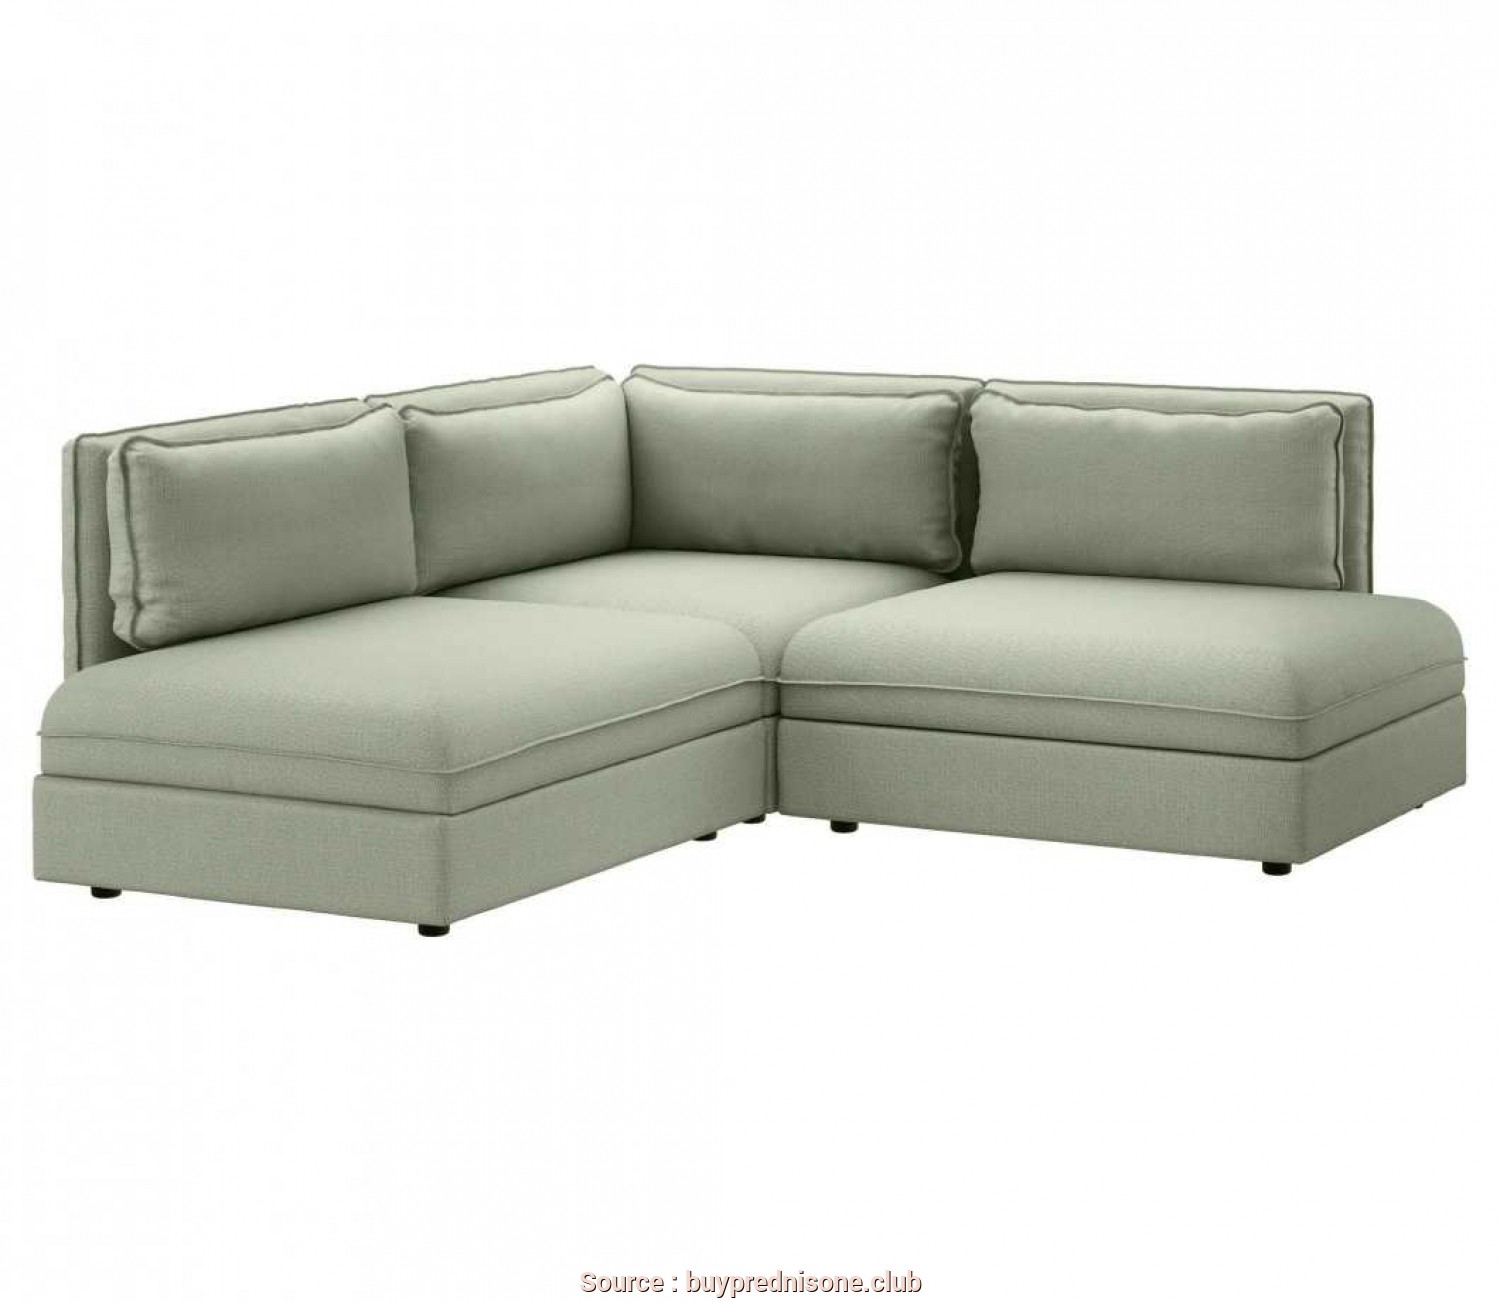 Futon Convertible 2 Places Ikea, Semplice Home Design Loveseat Futon Ikea With Lovely, 7 Best Sofas, Small Spaces To Buy